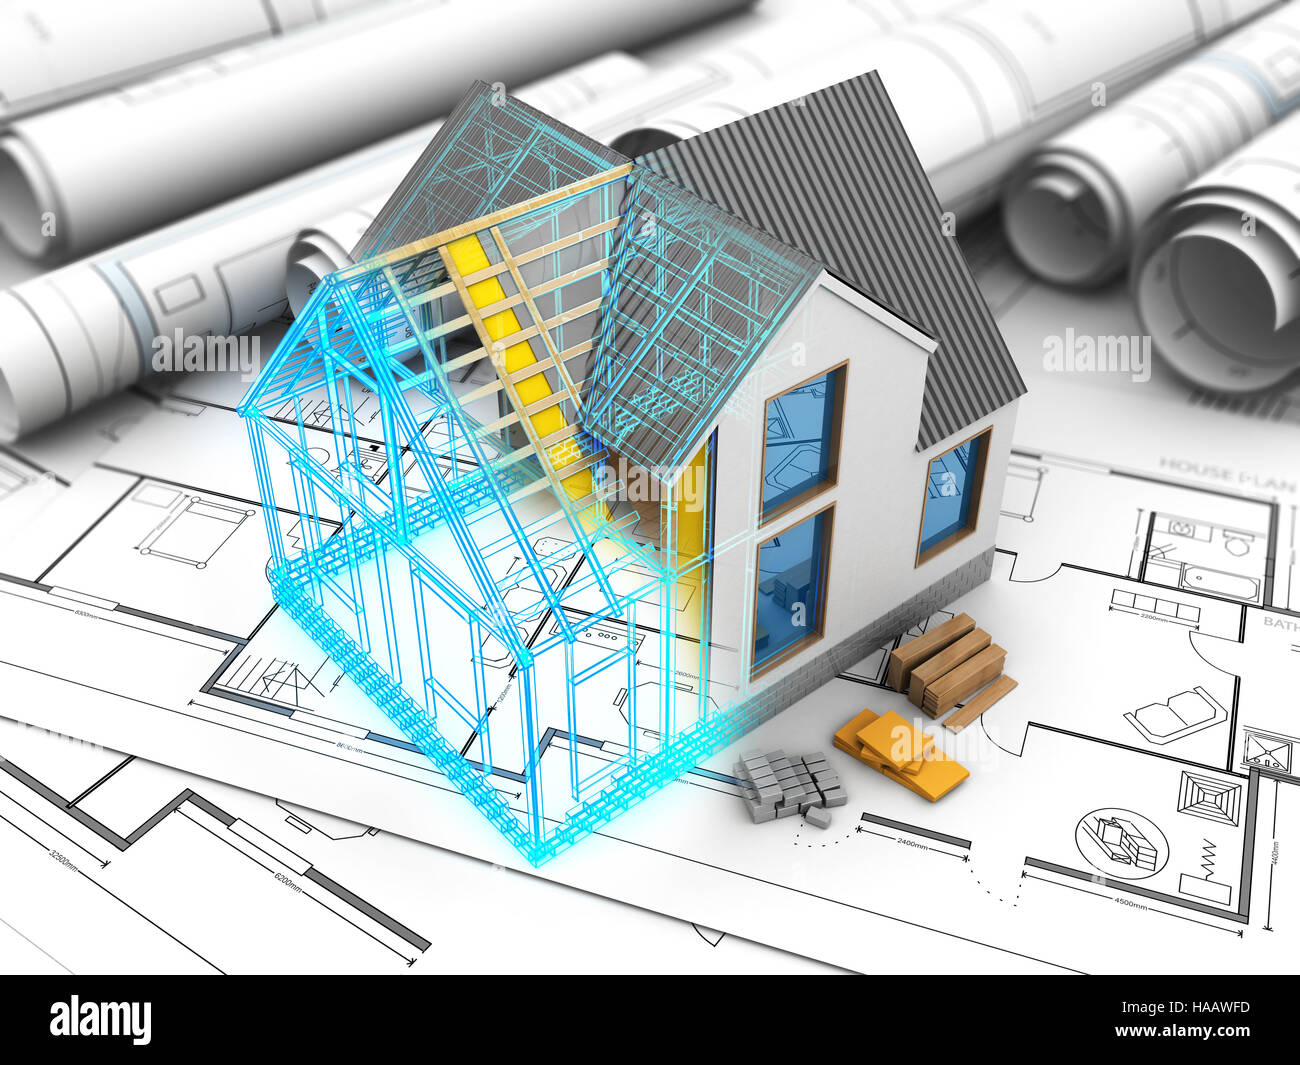 3d illustration of house model with frame and inside structure stock image